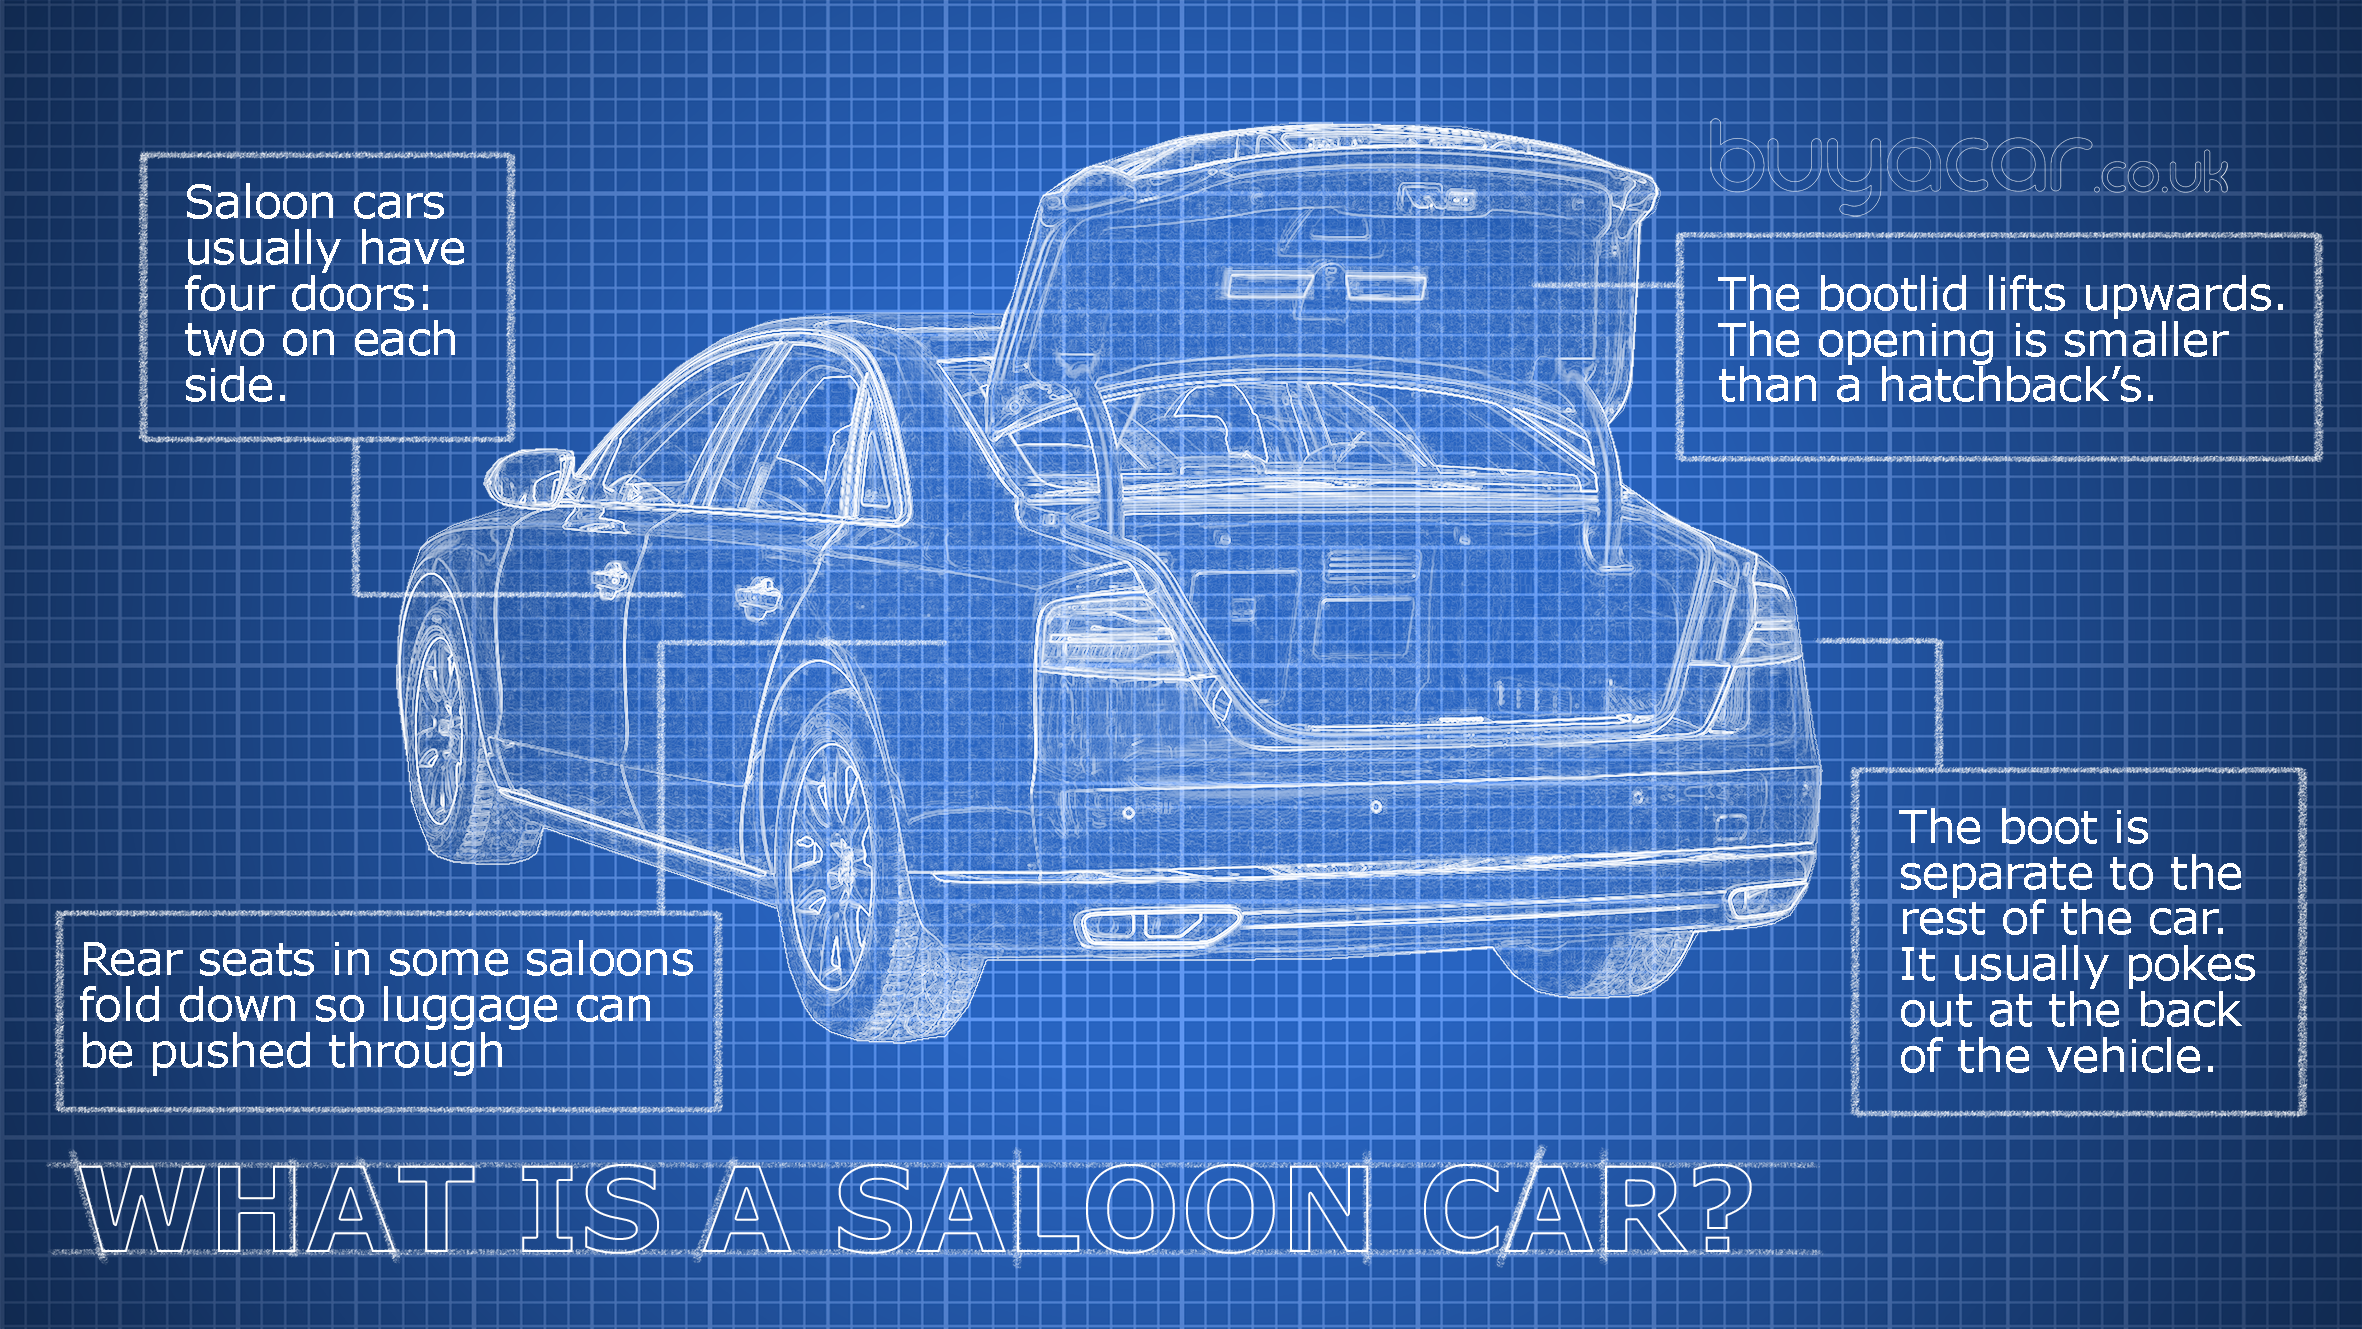 Whats a saloon car